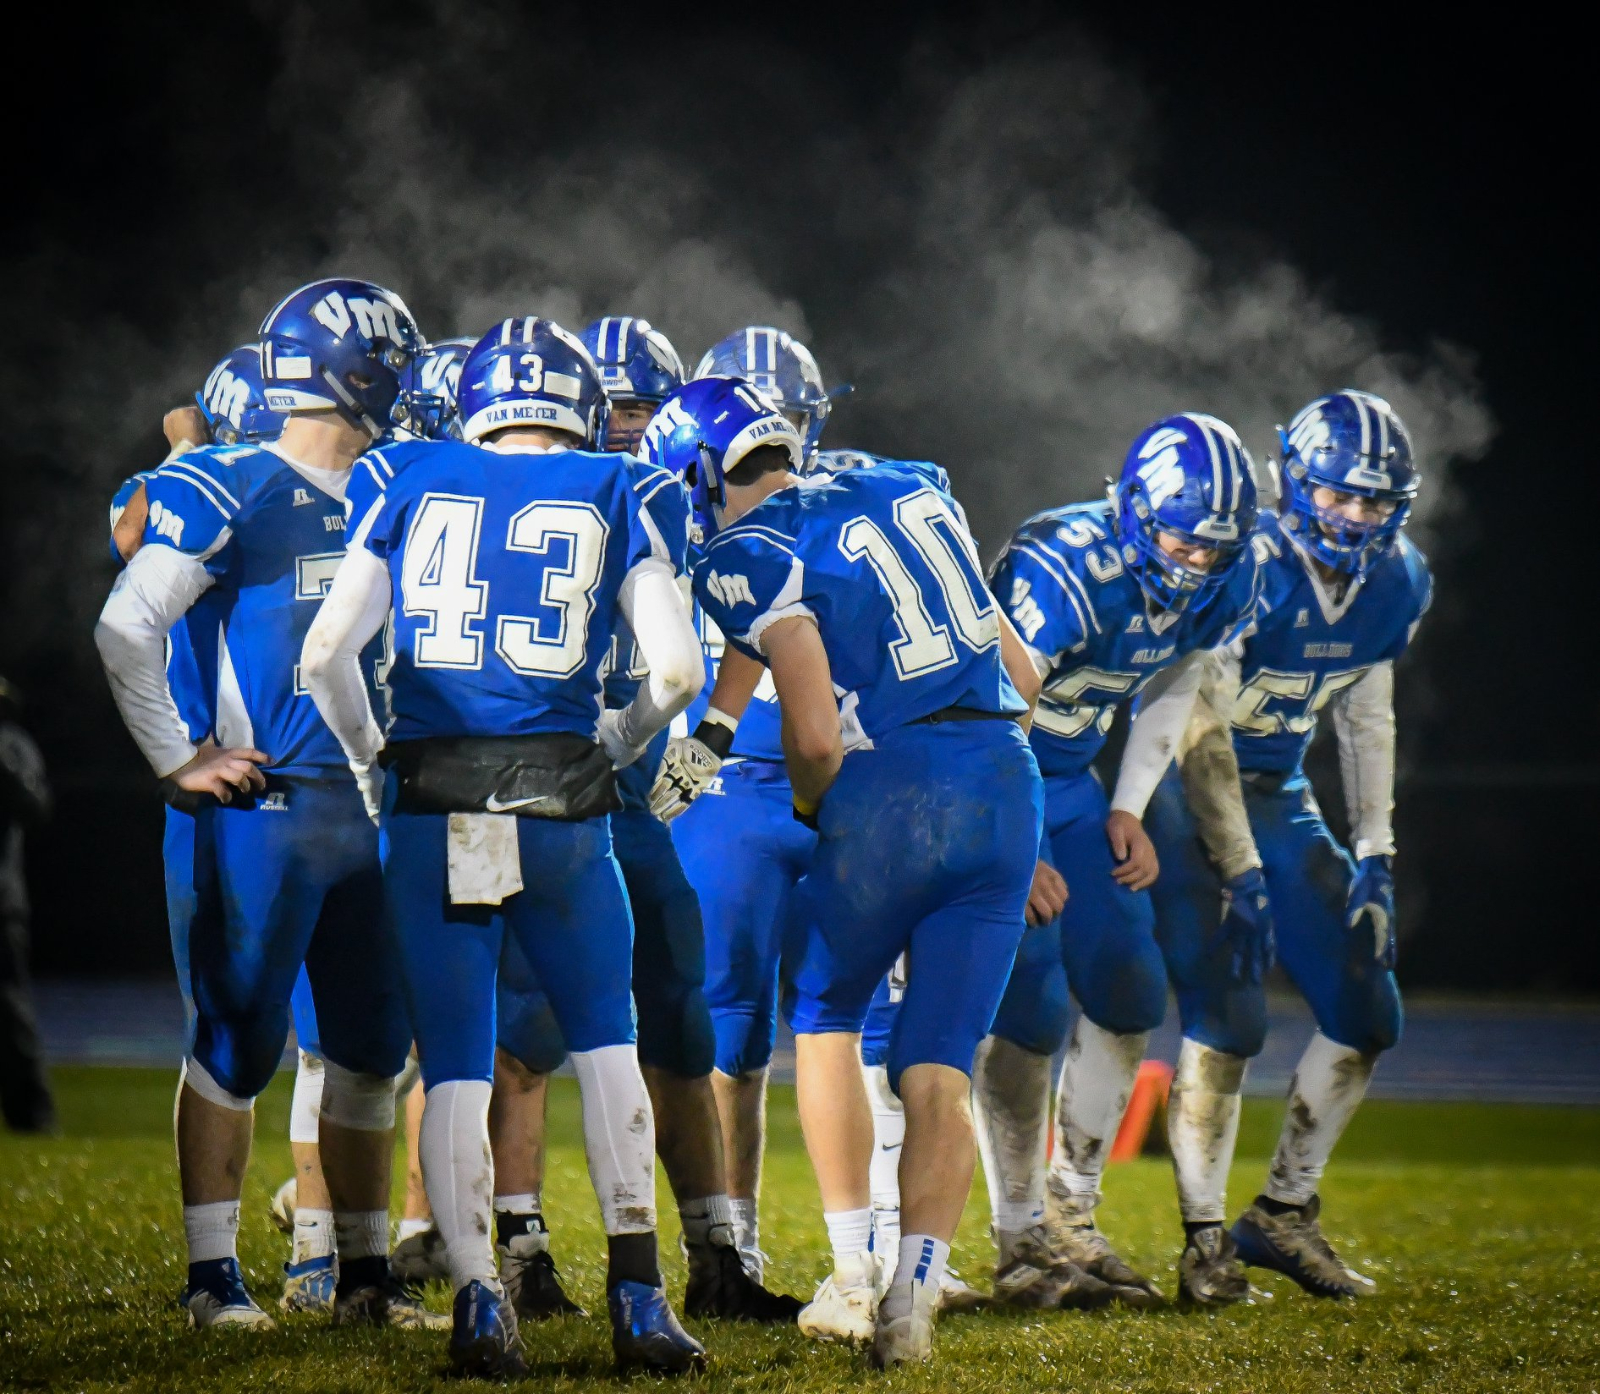 Bulldogs Win 38-12 Over Pella Christian to Advance in Playoffs